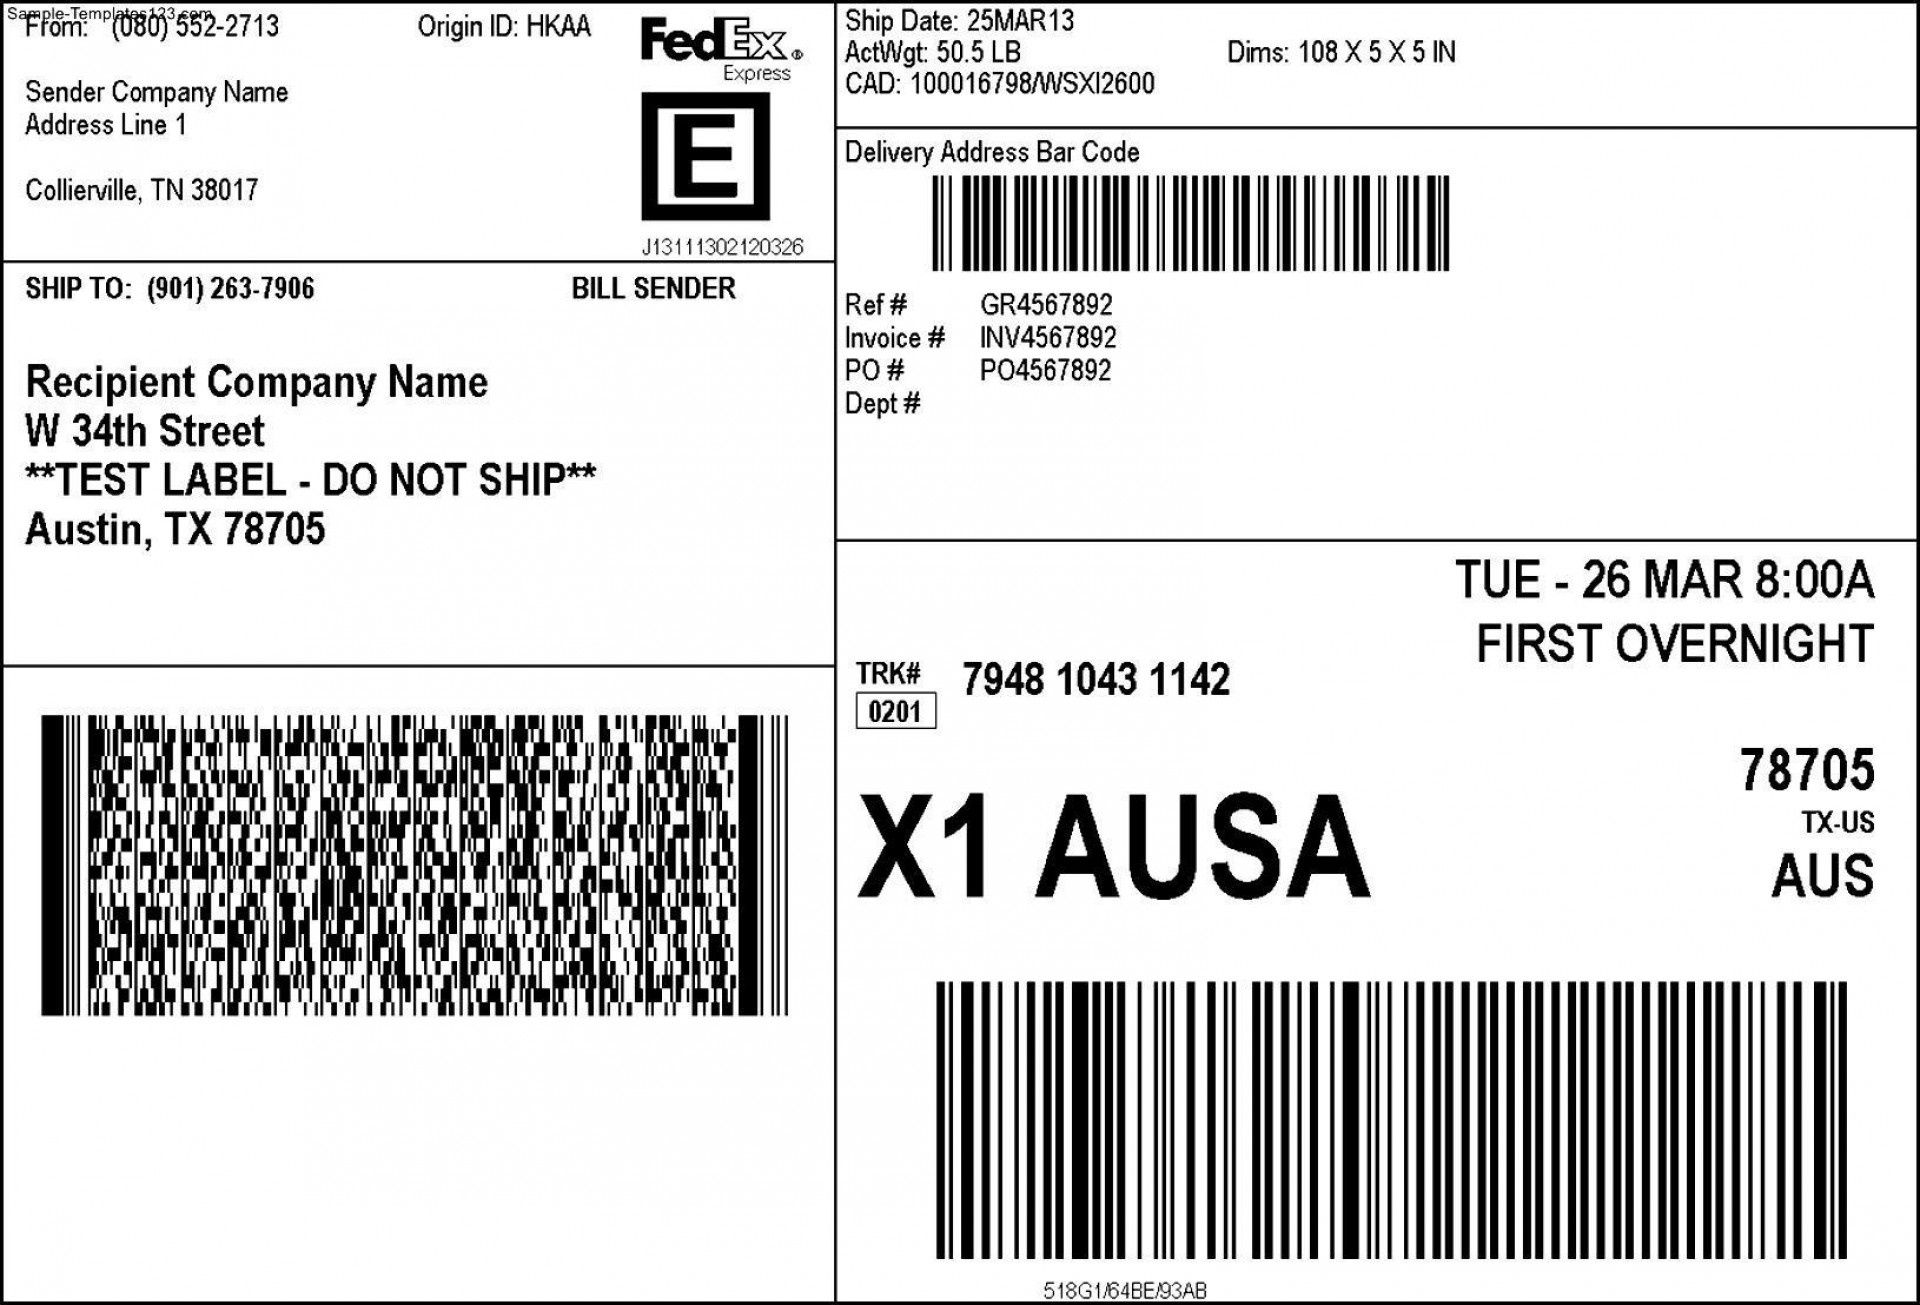 004 Stunning Shipping Label Template Free Word High Resolution Full